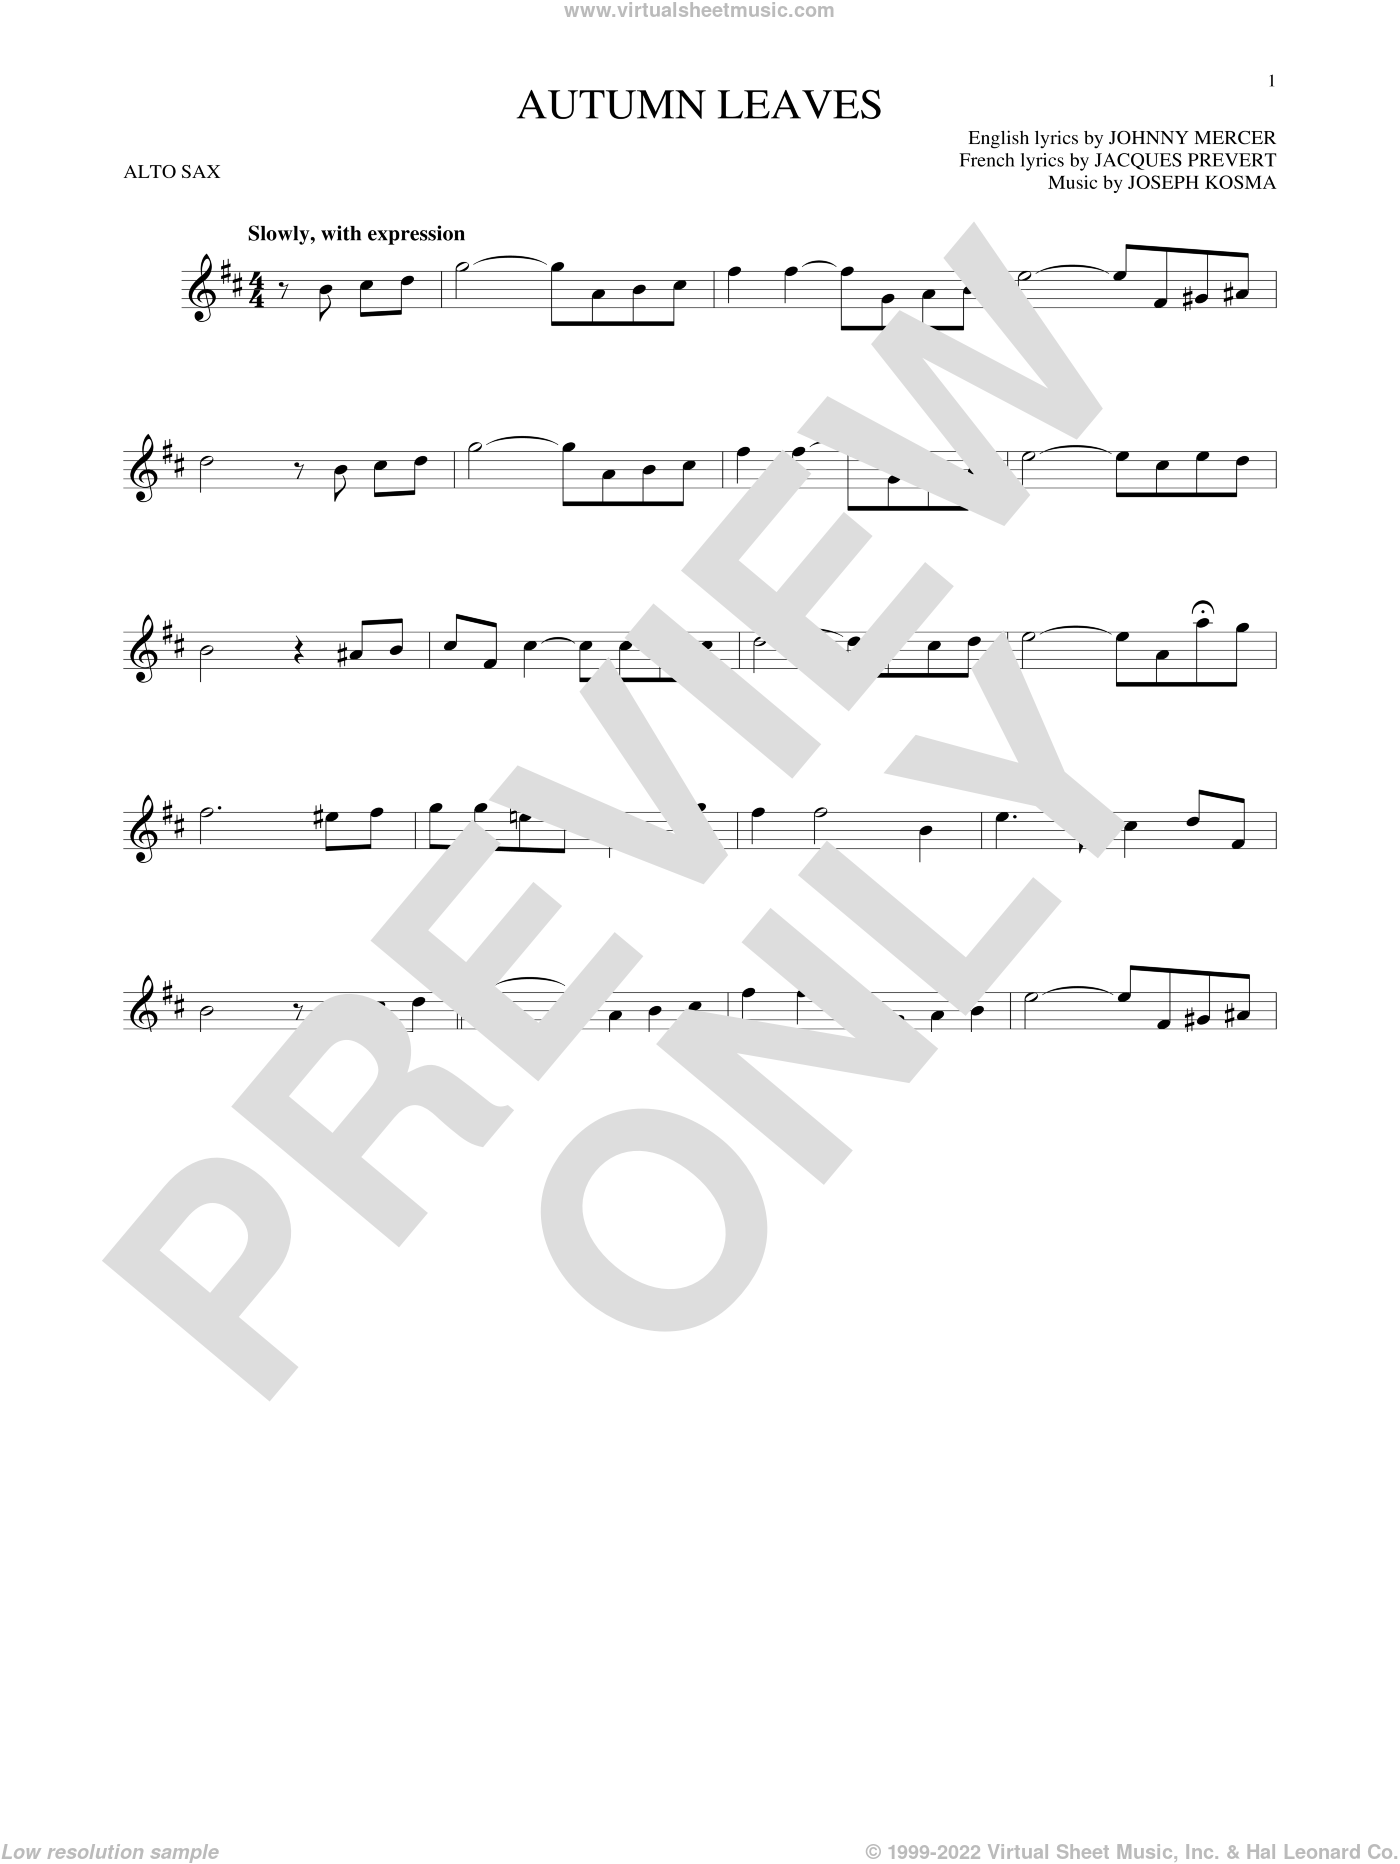 Autumn Leaves sheet music for alto saxophone solo by Johnny Mercer, Mitch Miller, Roger Williams, Steve Allen & George Cates, Jacques Prevert and Joseph Kosma, intermediate skill level